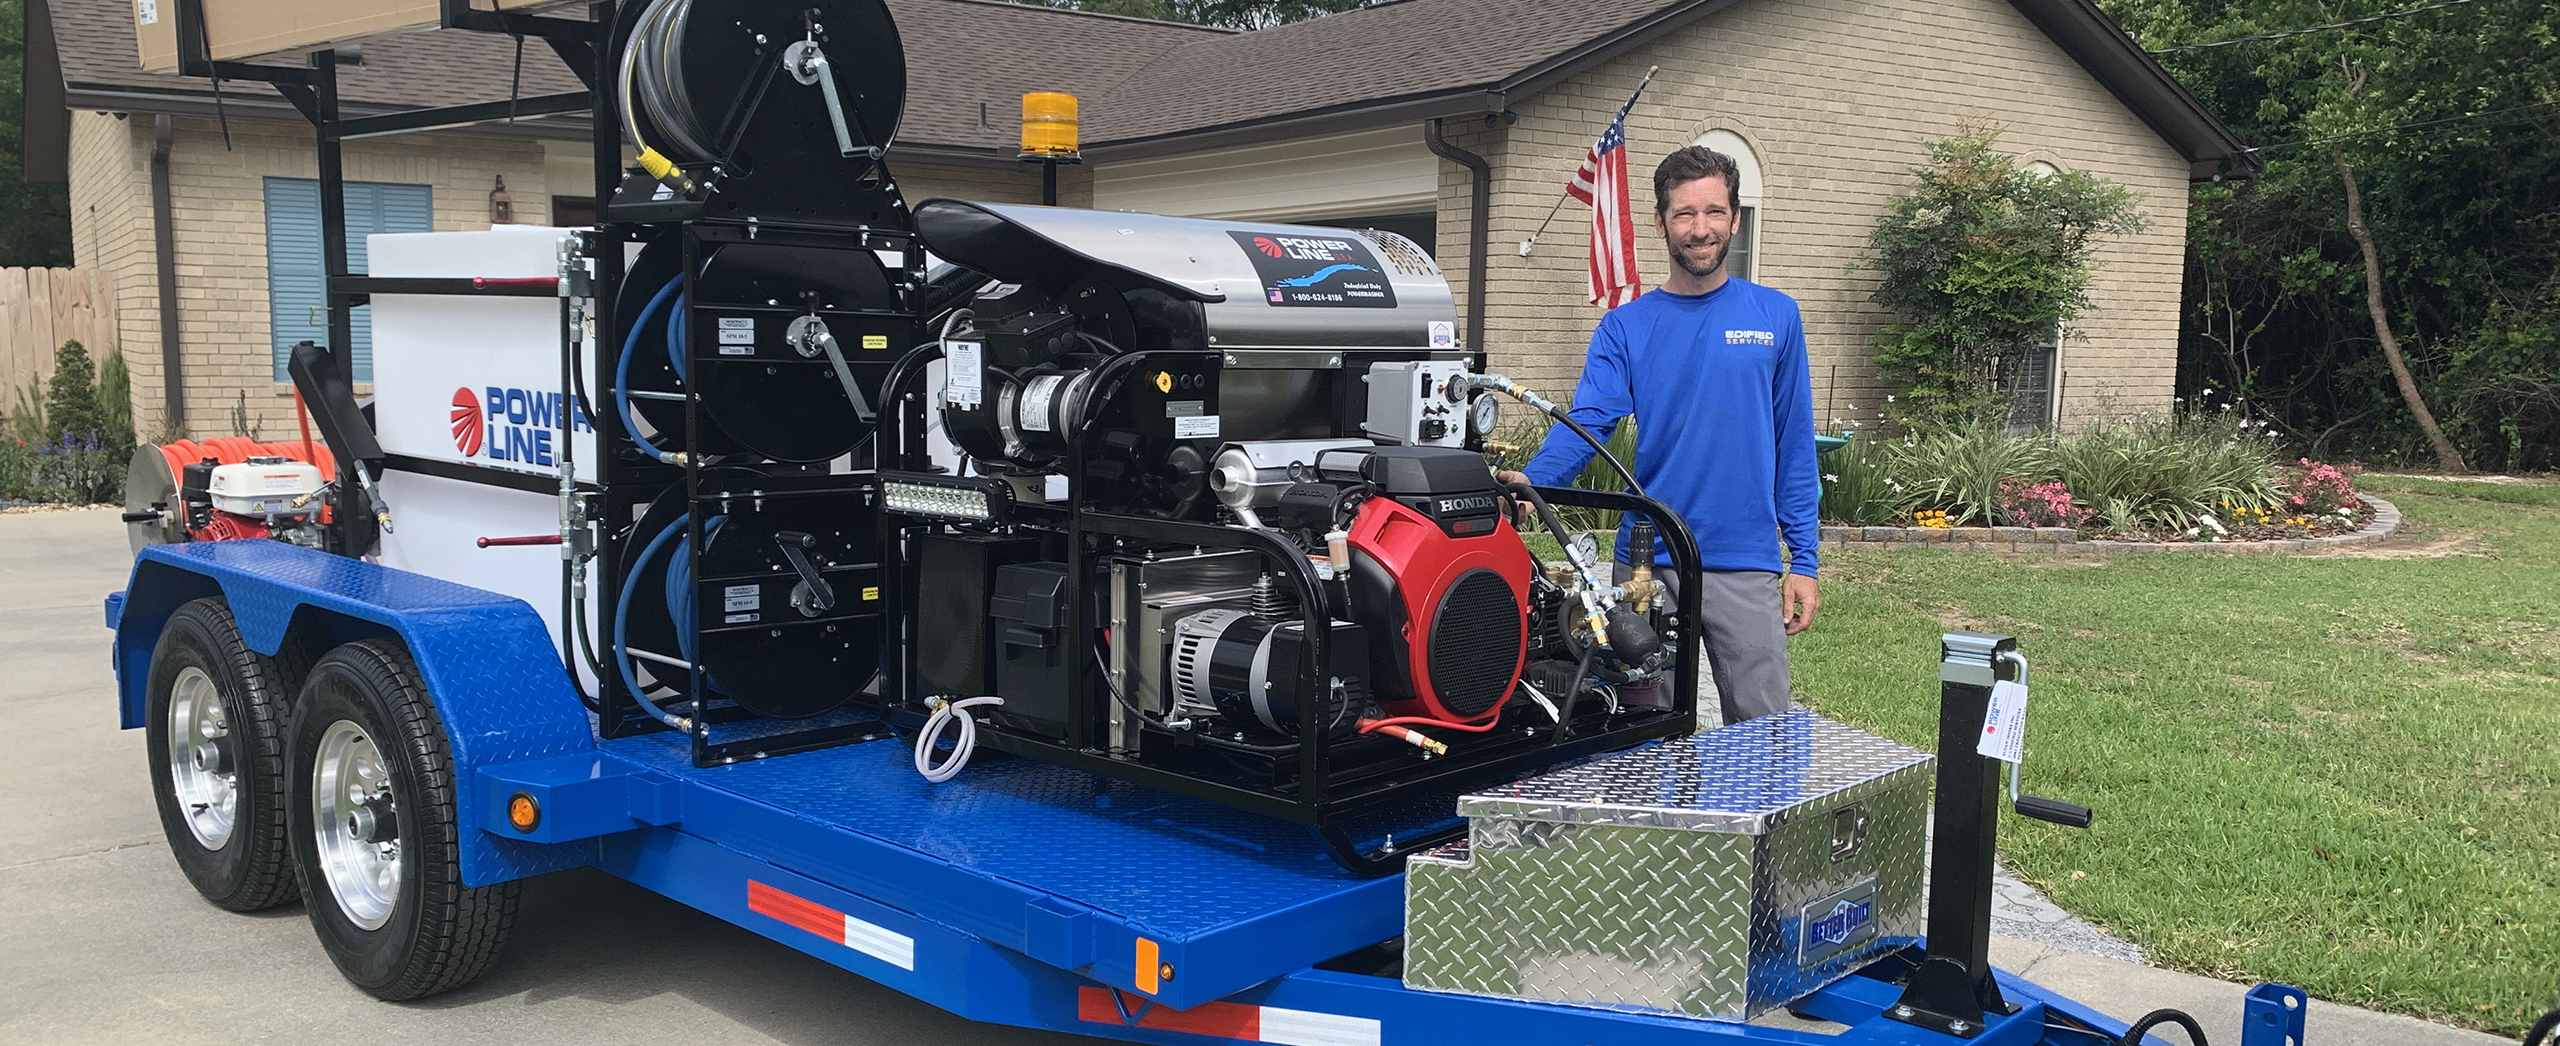 Ed Wehmeier and Edified Services equipment